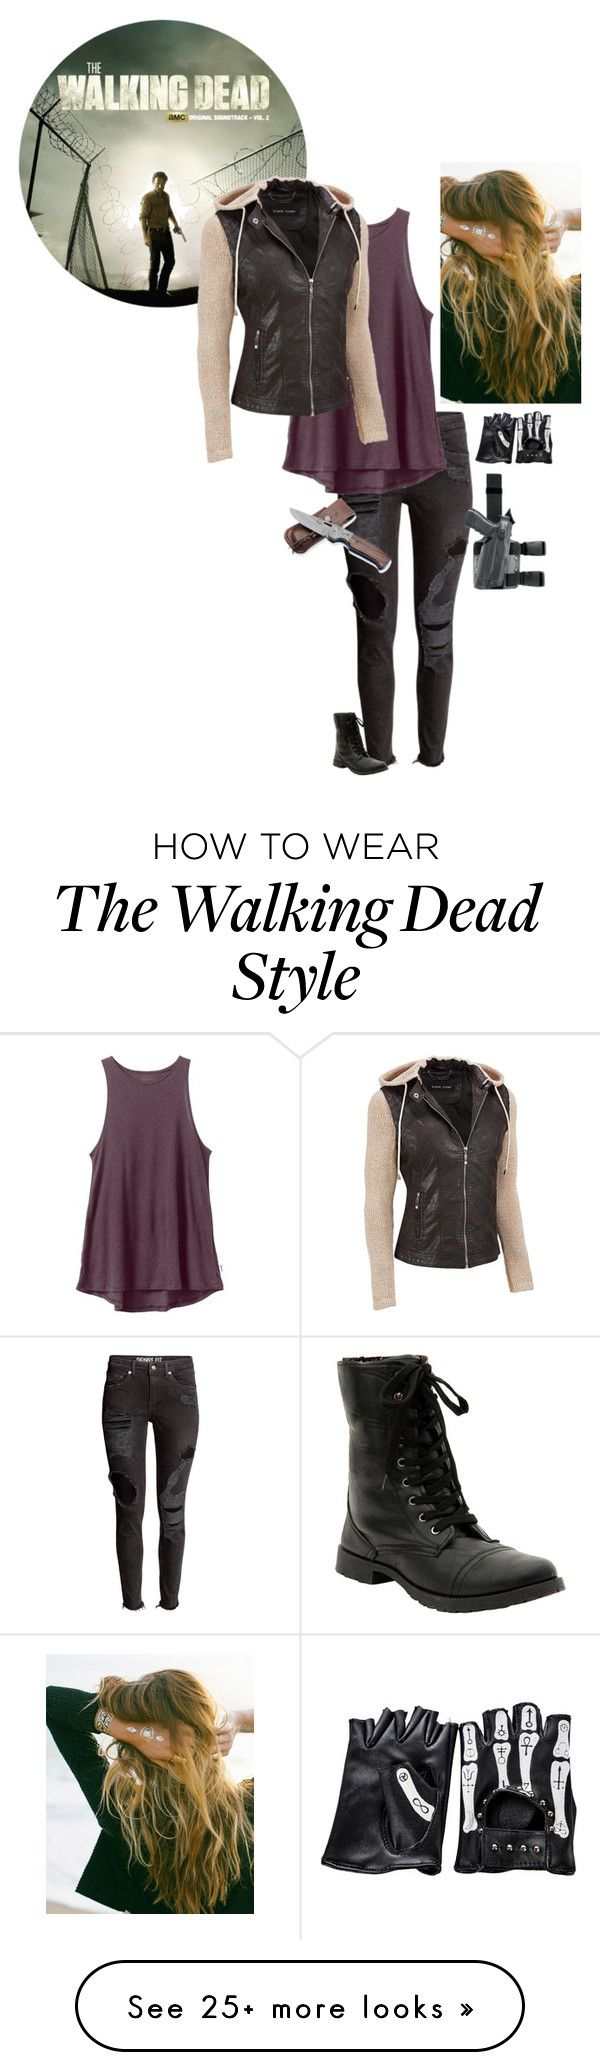 """""""Happy Walking Dead Day!!!"""" by awesomekittypower on Polyvore featuring RVCA, Black Rivet, Lulu DK, women's clothing, women, female, woman, misses and juniors"""